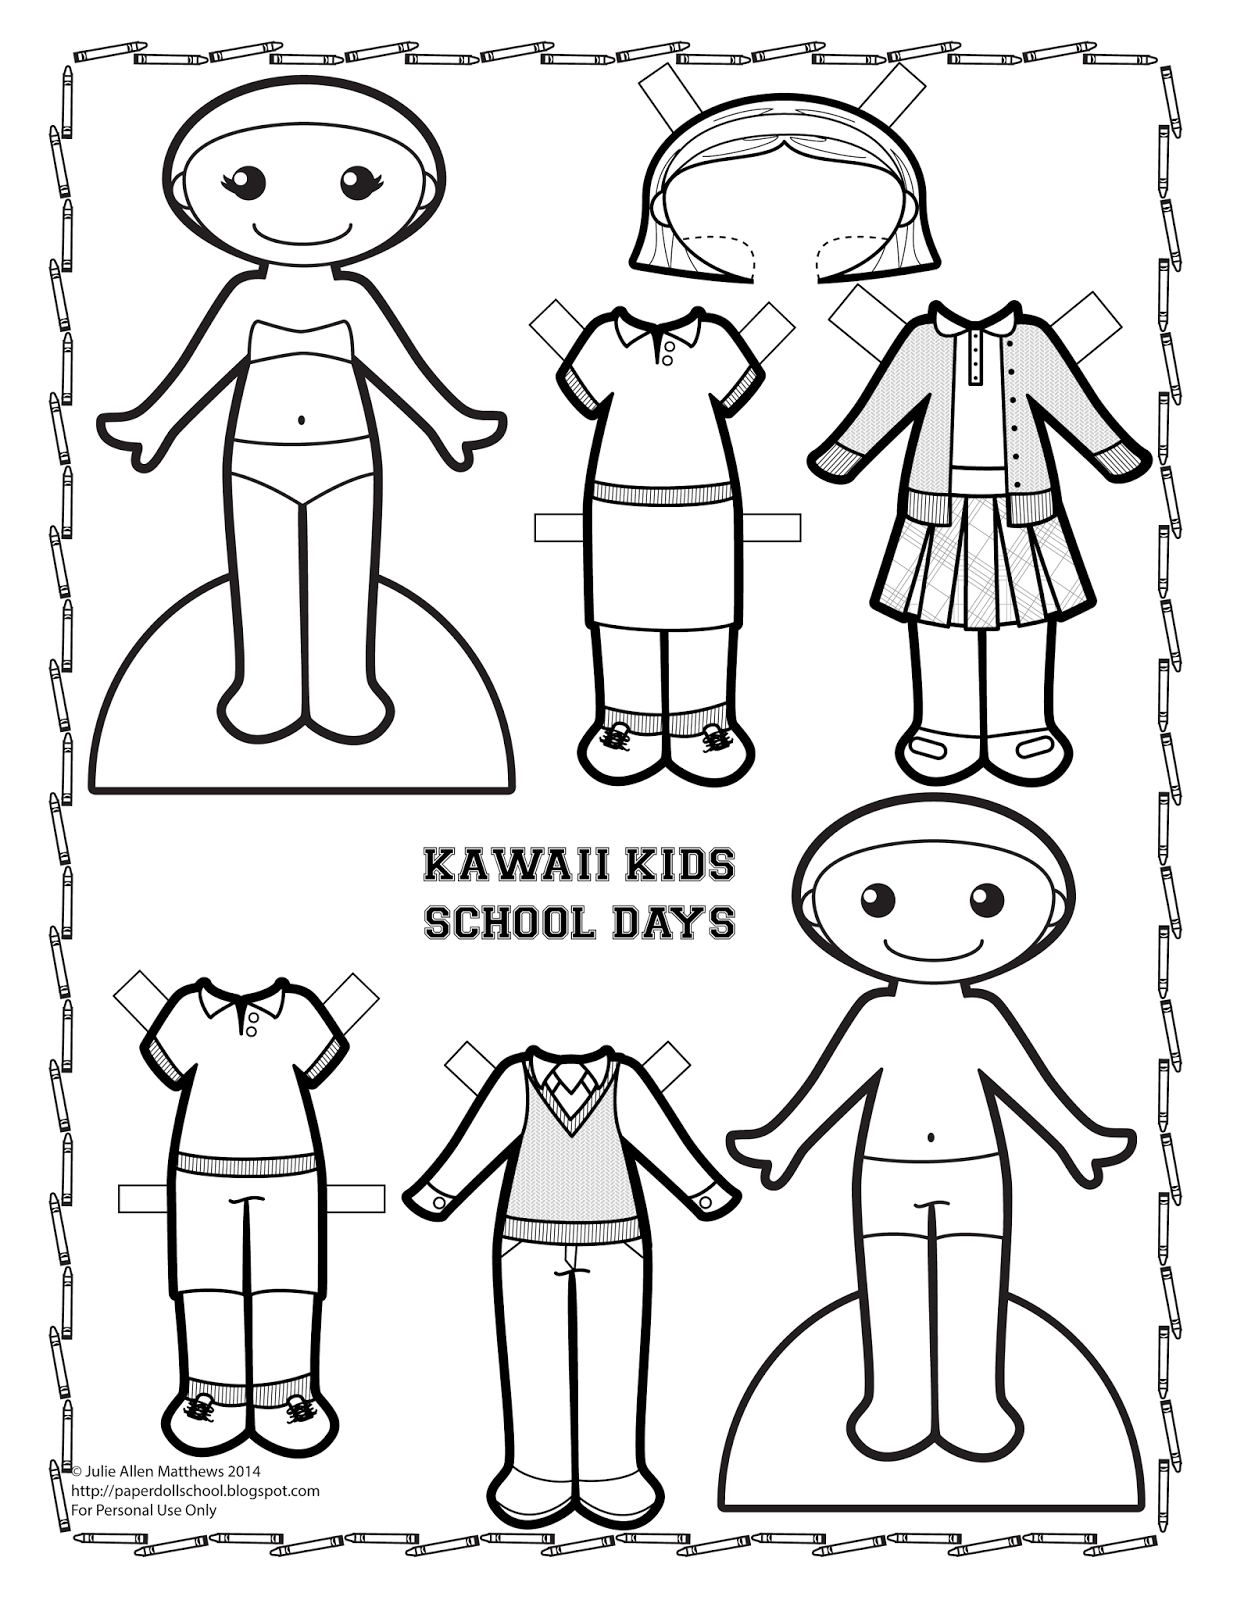 A black and white Kawaii Kid paper doll to color! Paper